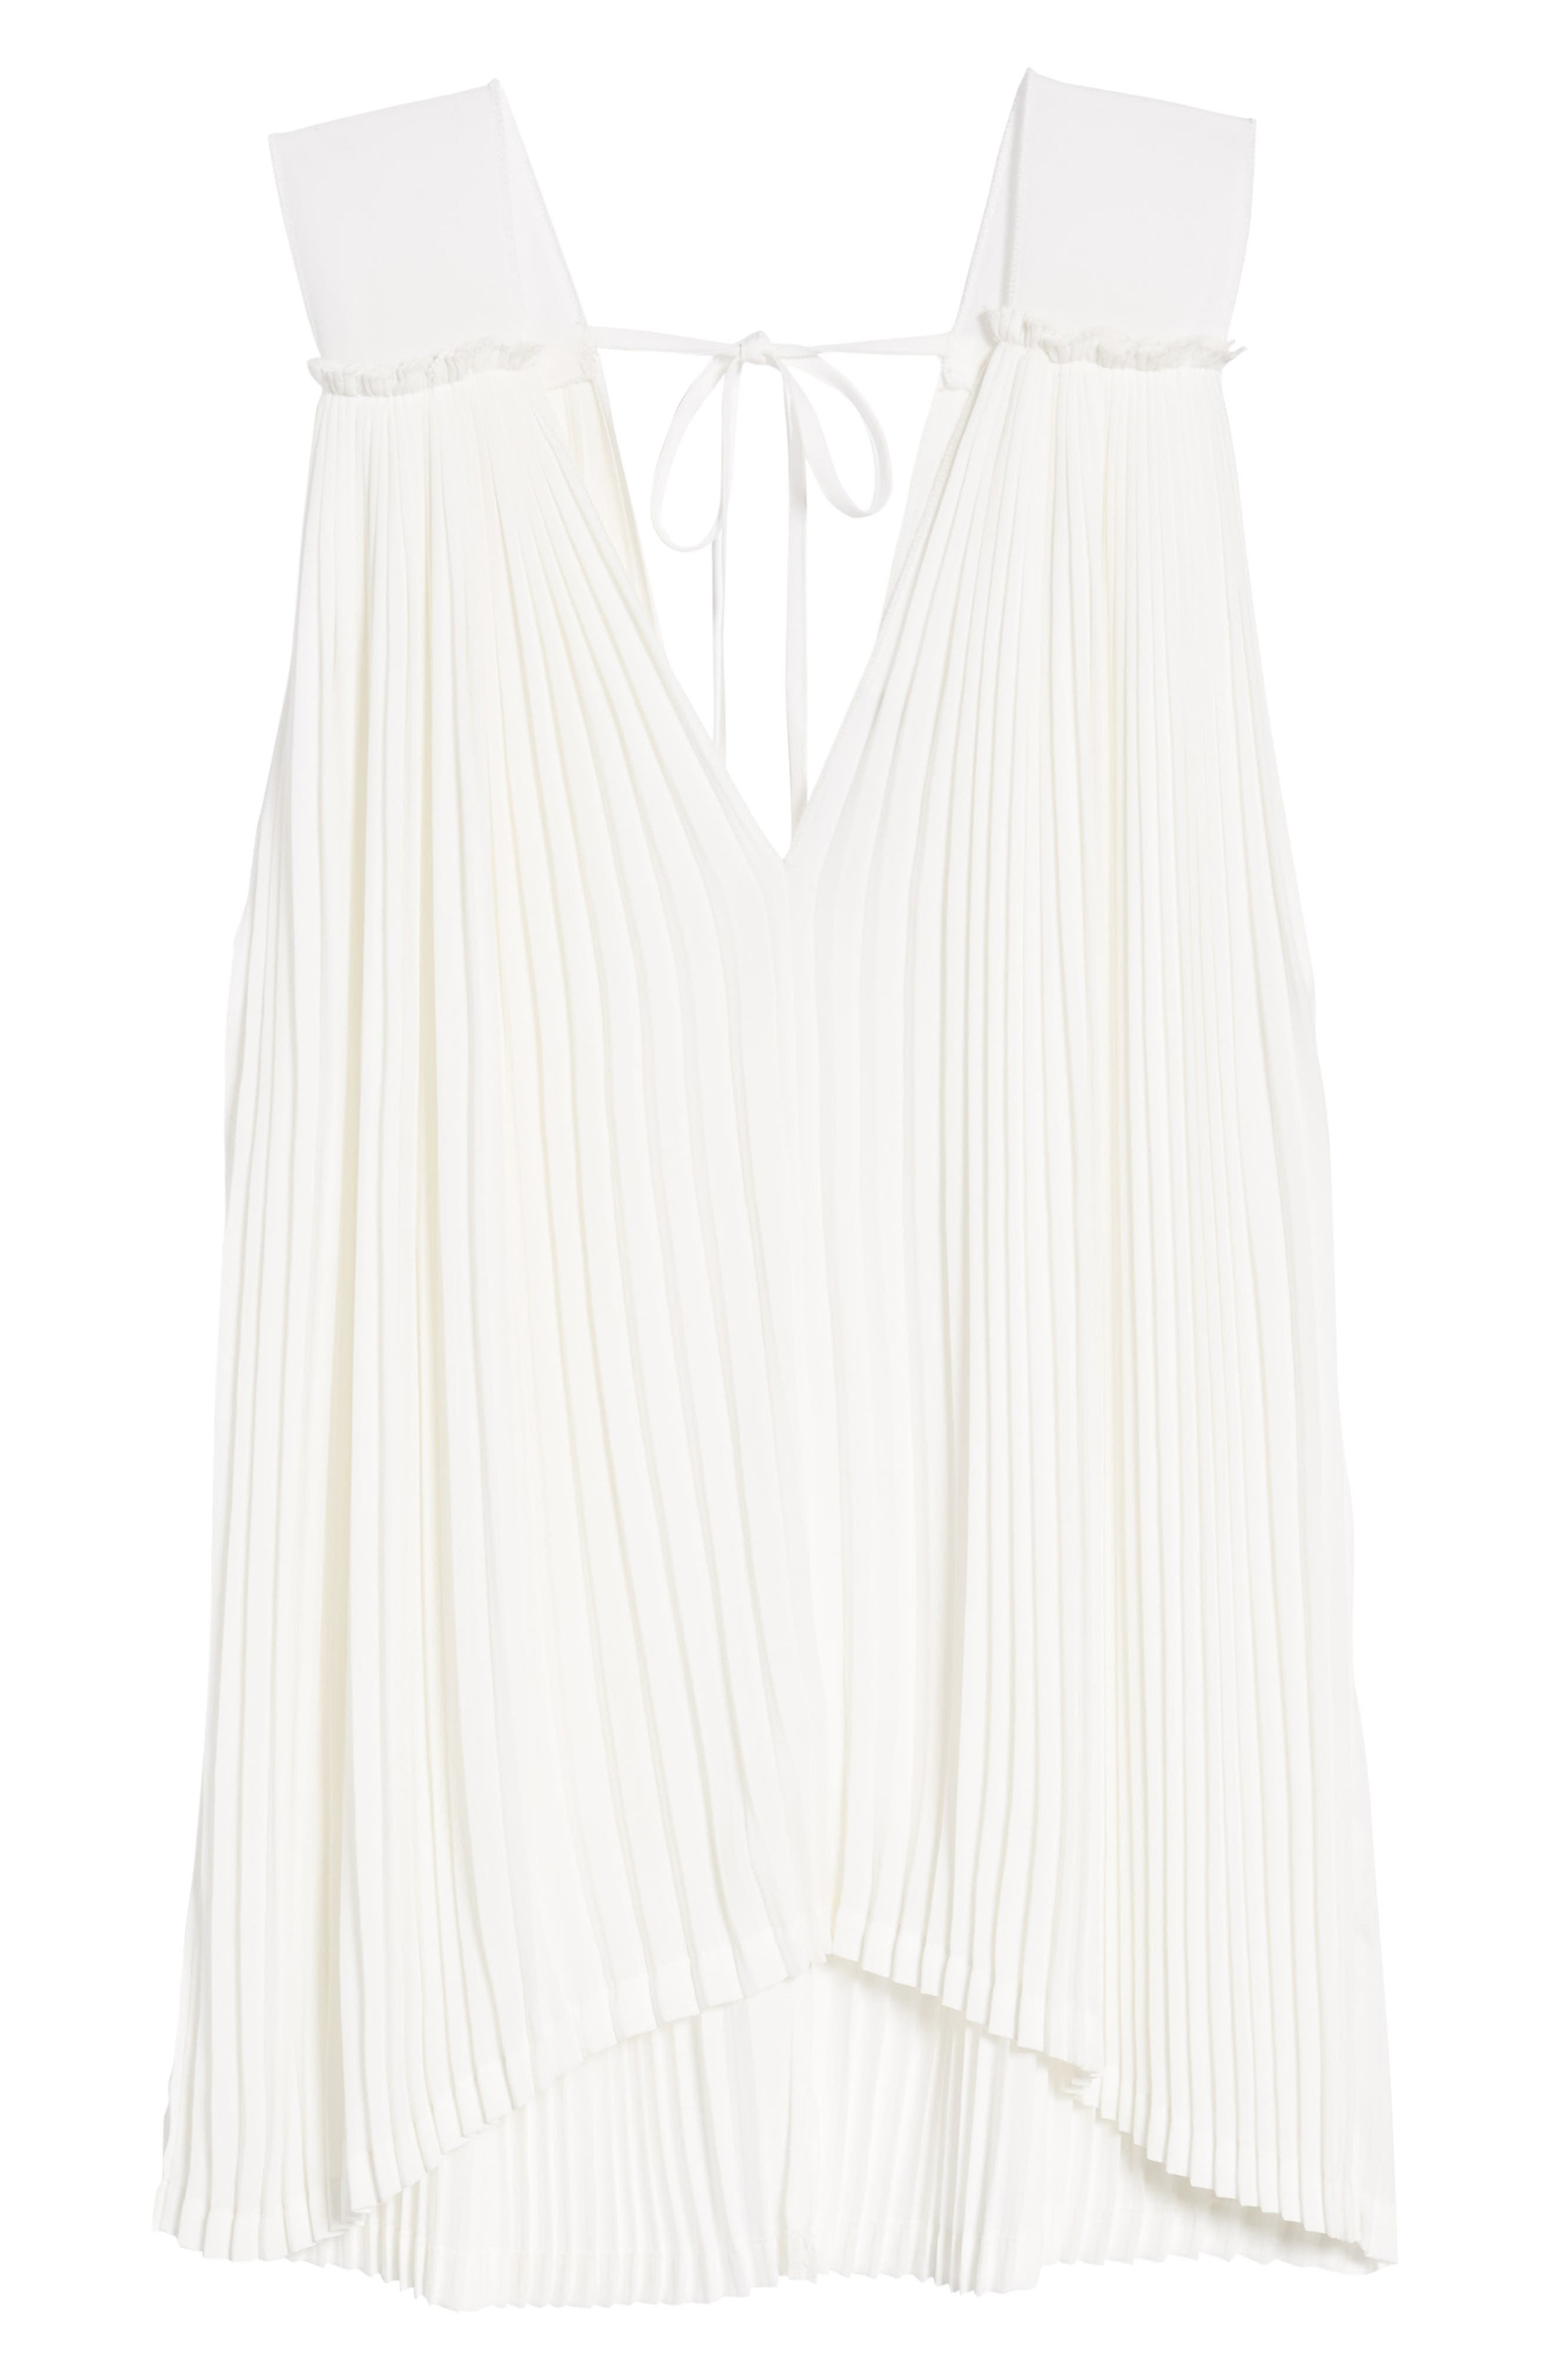 Bishop + Young Pleat Blouse,                             Alternate thumbnail 6, color,                             White